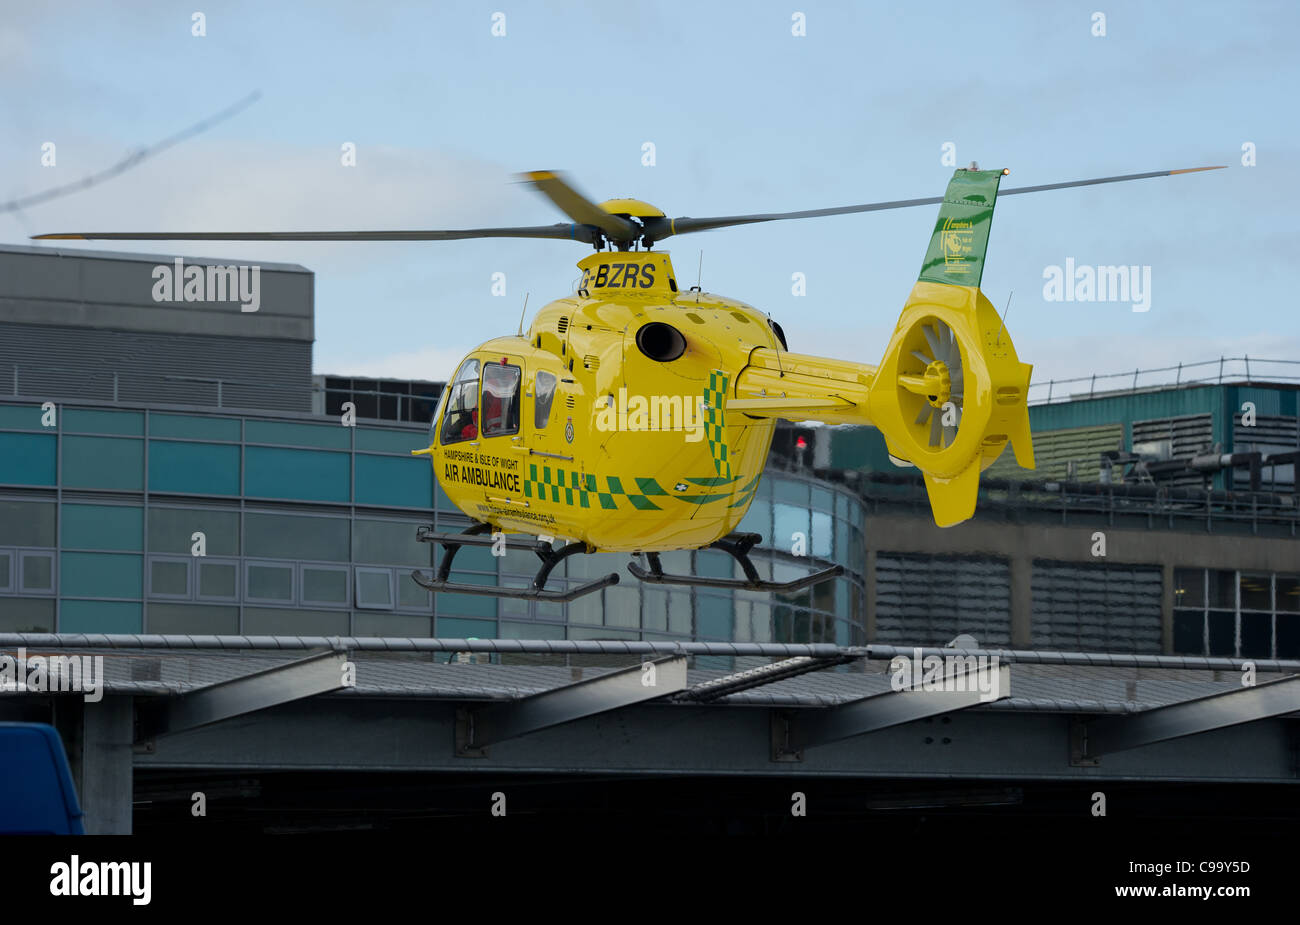 the hampshire and isle of wight air ambulance comes into land at Southampton General hospital on the Helipad - Stock Image